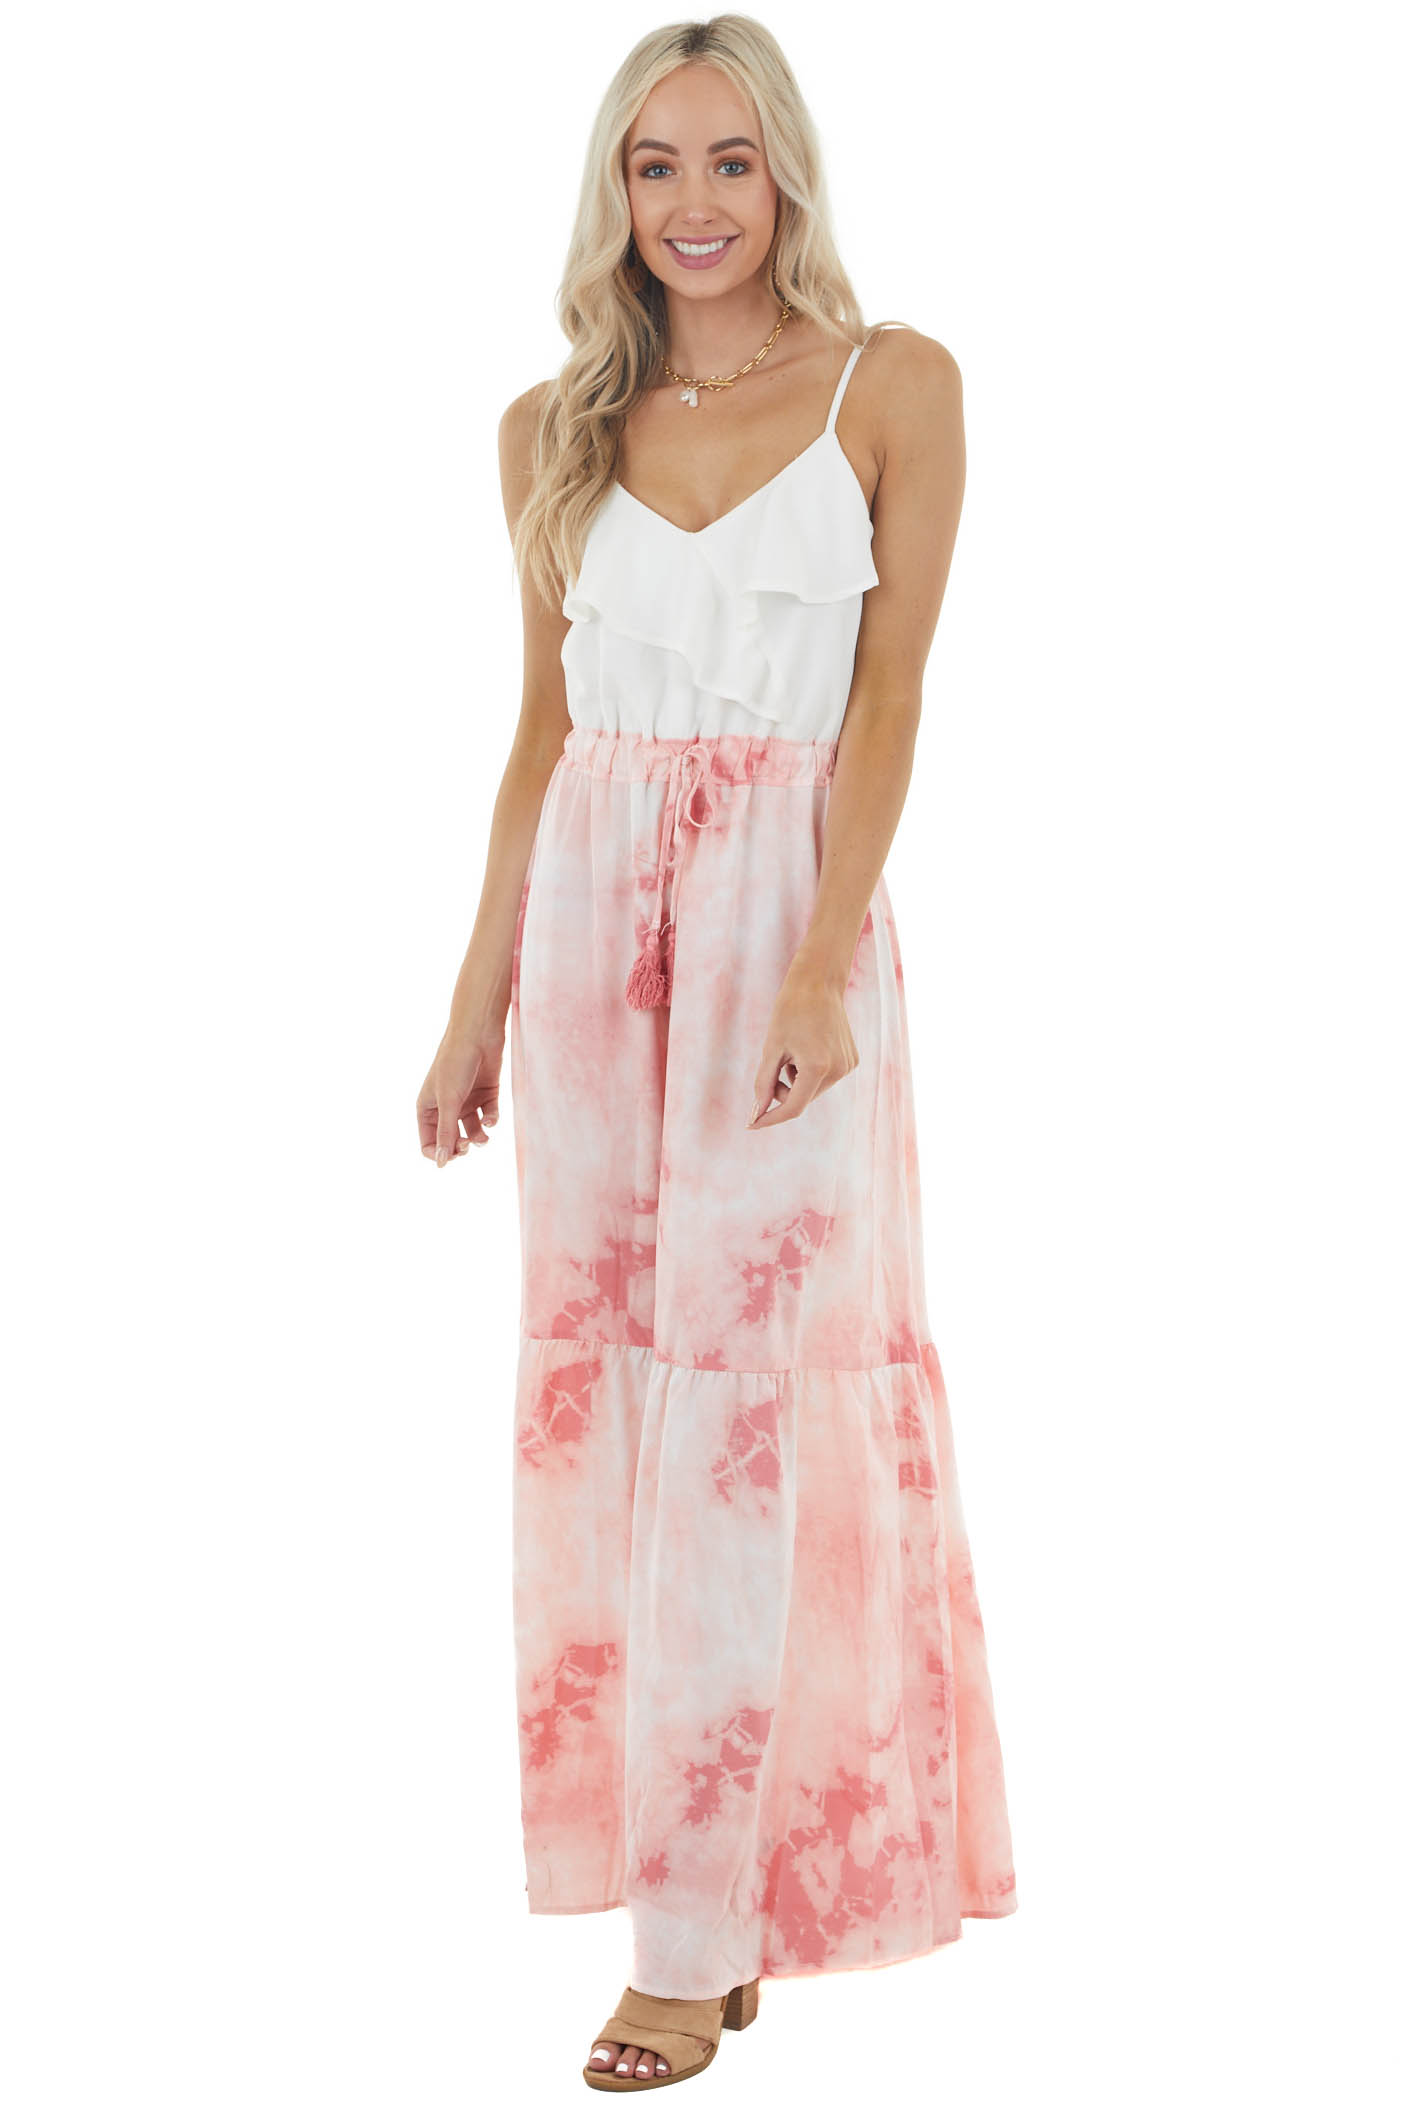 Dusty Blush Tie Dye Maxi Dress with Ruffle V Neck Detail